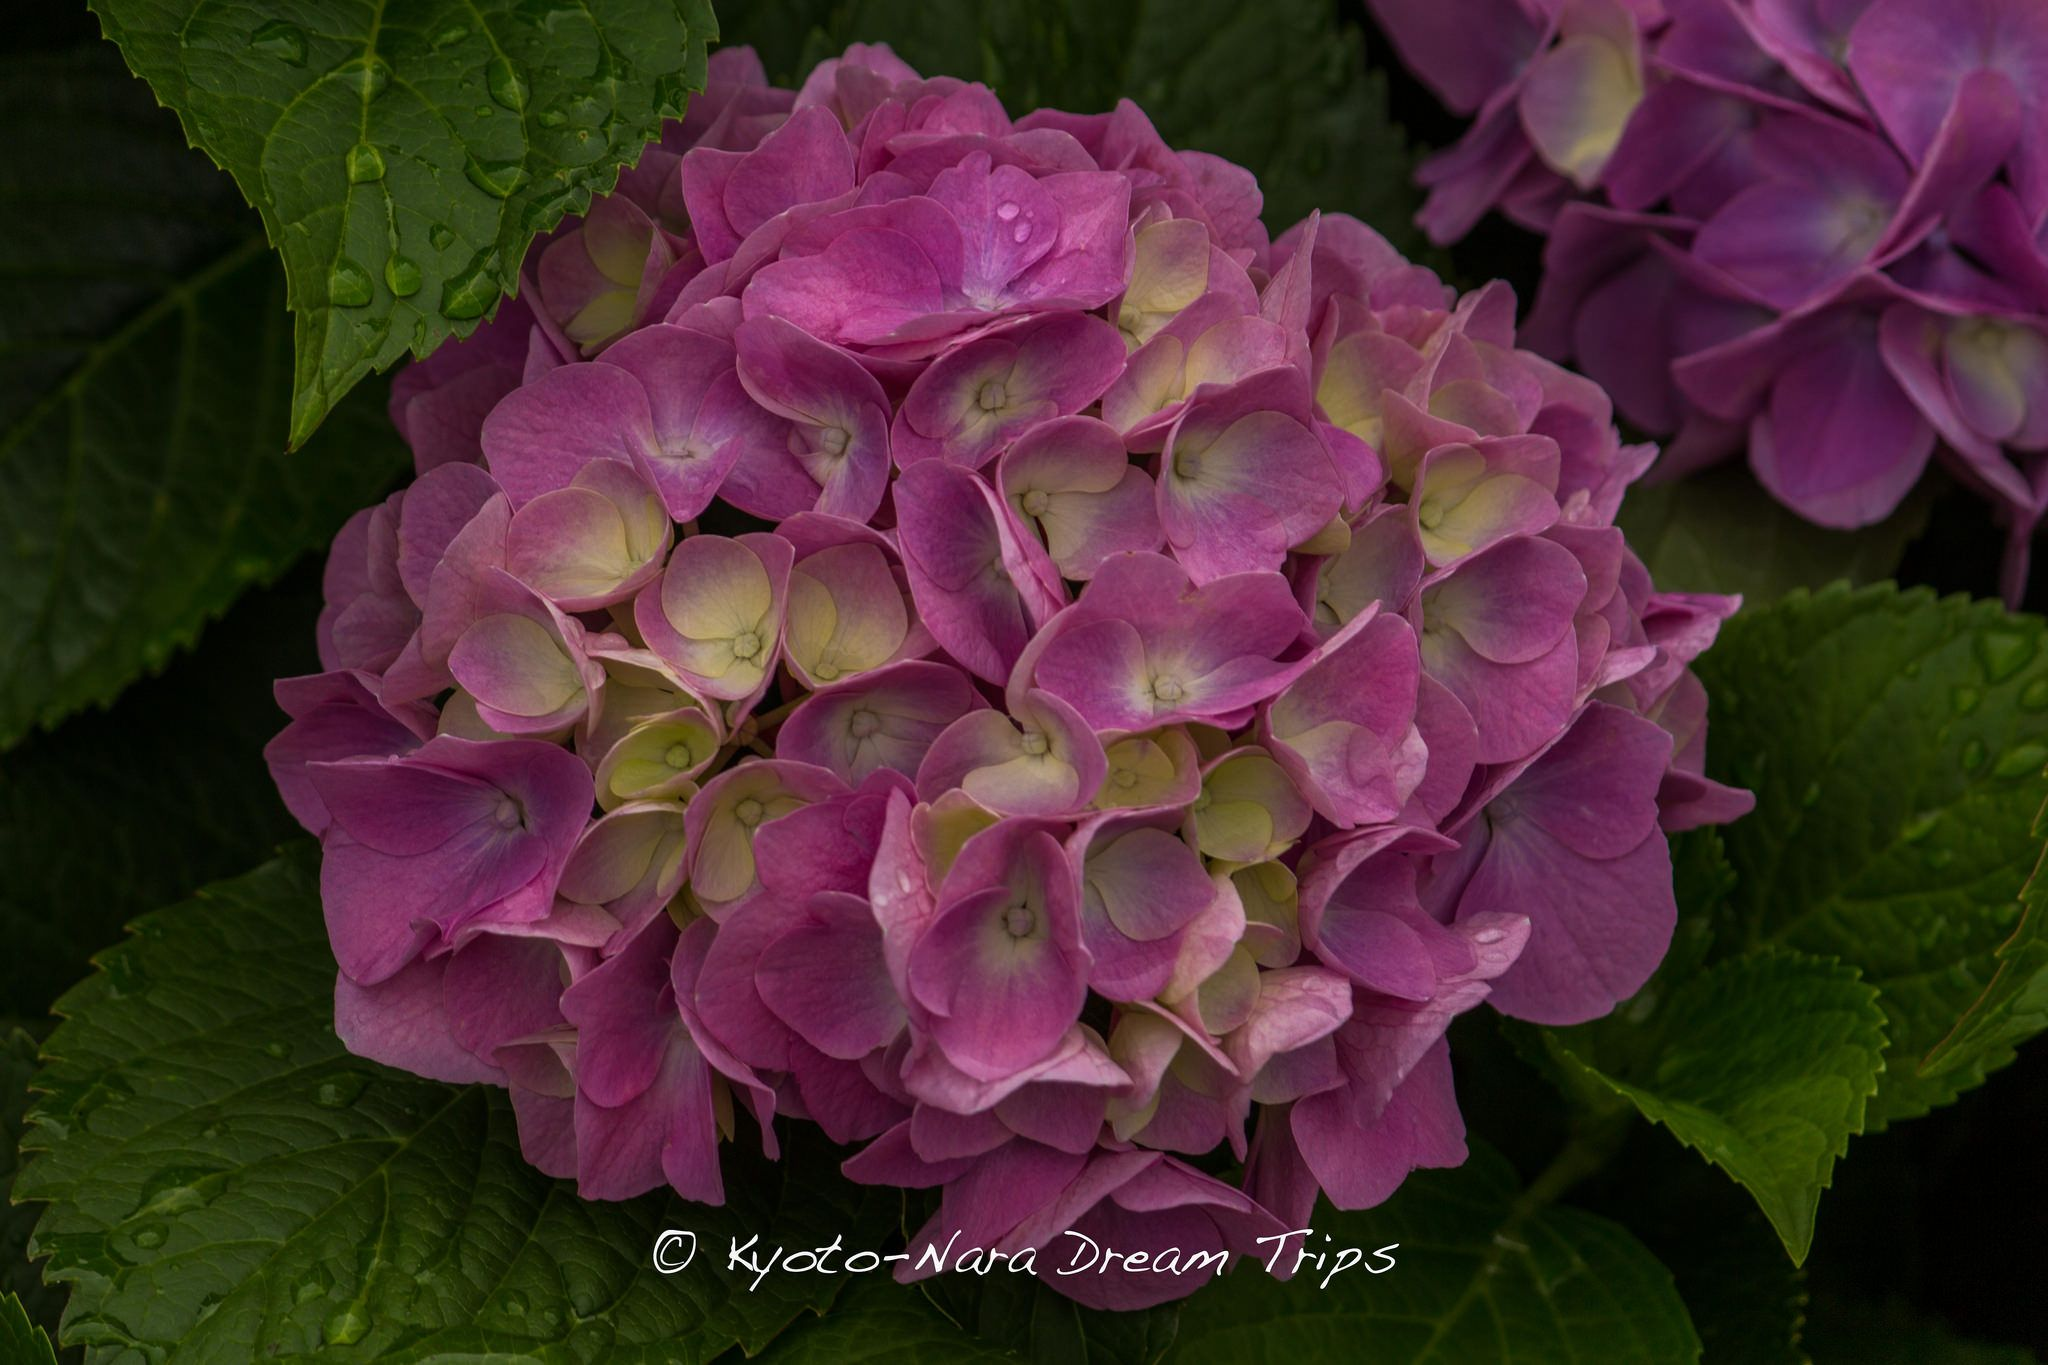 """Hydrangea at the famous gardens of Sanzen-in (三千院) in Rural Ōhara in Kyoto. Pink hydrangeas have many different meanings, but generally mean, """"You are the beat of my heart,"""" as described by the celebrated Asian florist Tan Jun Yong, where he was quoted saying, """"The light delicate blush of the petals reminds me of a beating heart, while the size could only match the heart of the sender!"""""""